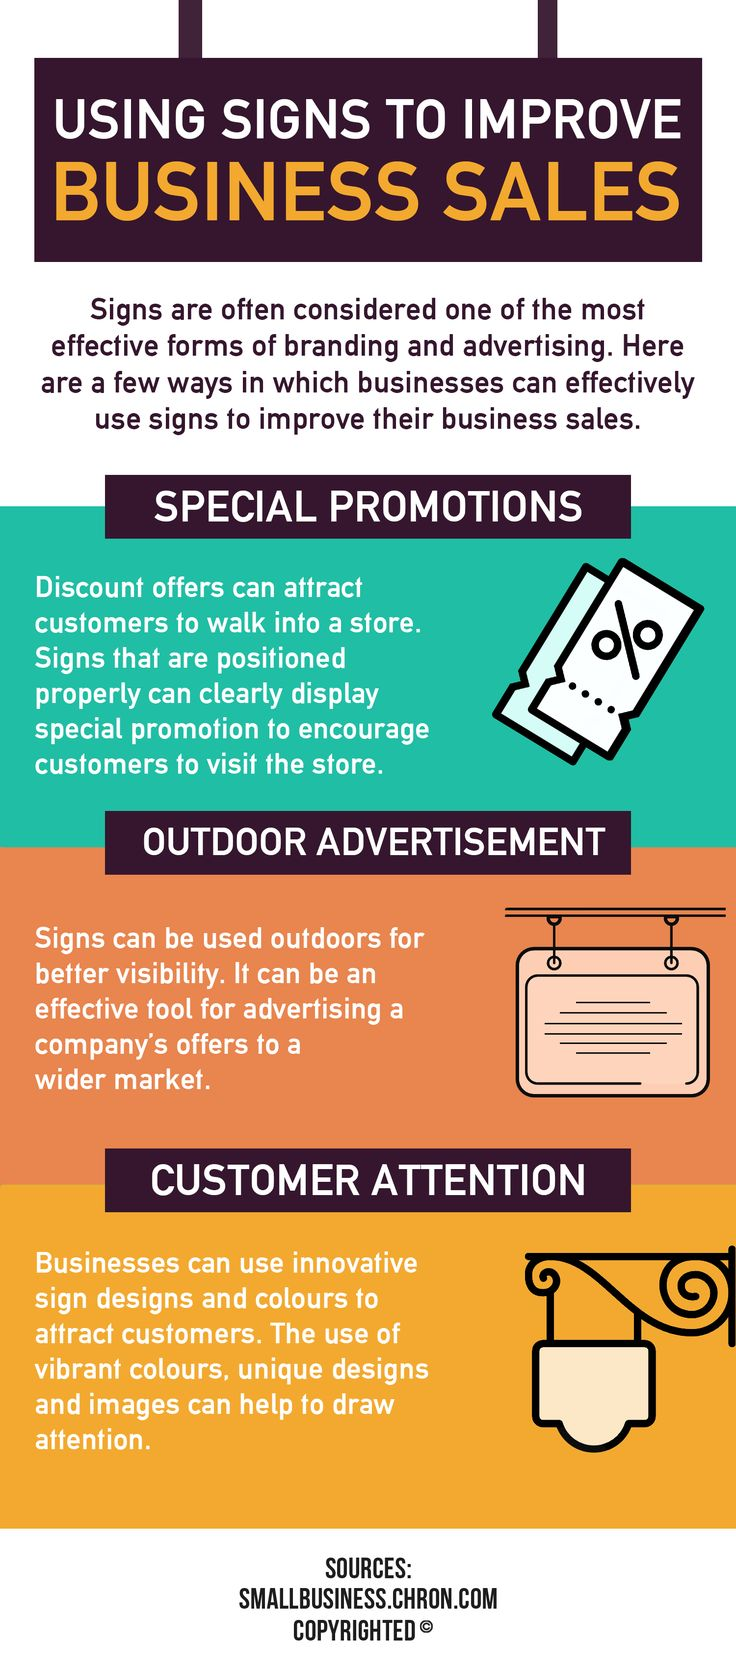 Use of signs can help businesses to increase on their sales because it can promote visibility. Signs that are positioned properly can clearly display special promotion to encourage customers.